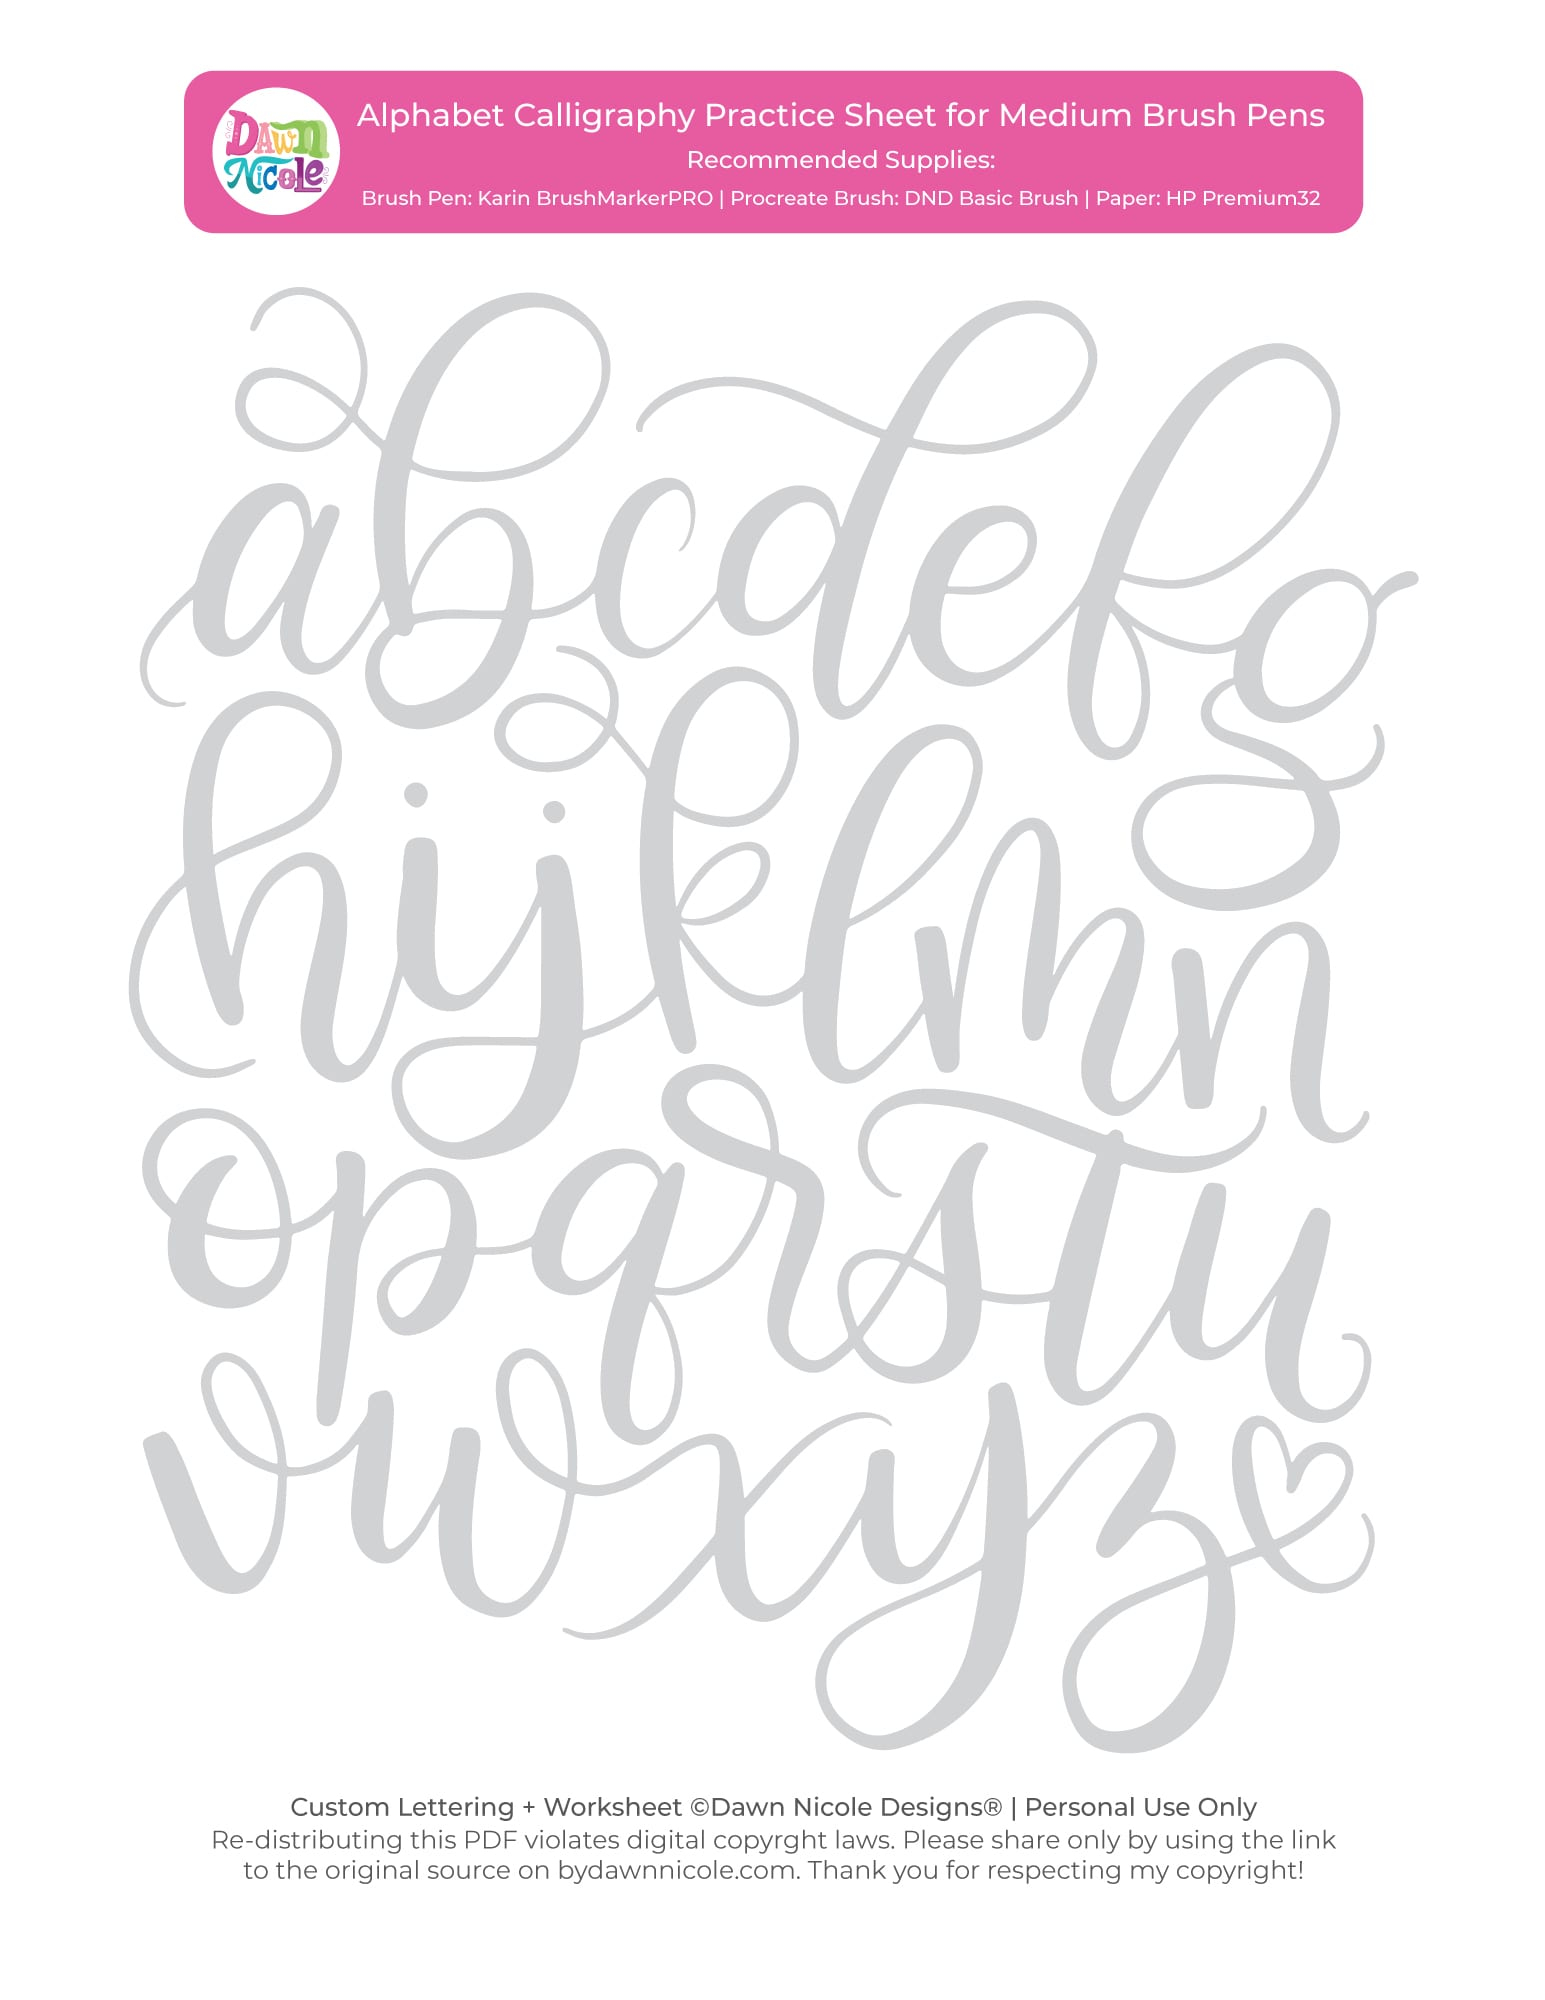 Alphabet Calligraphy Free Practice Sheets | Dawn Nicole